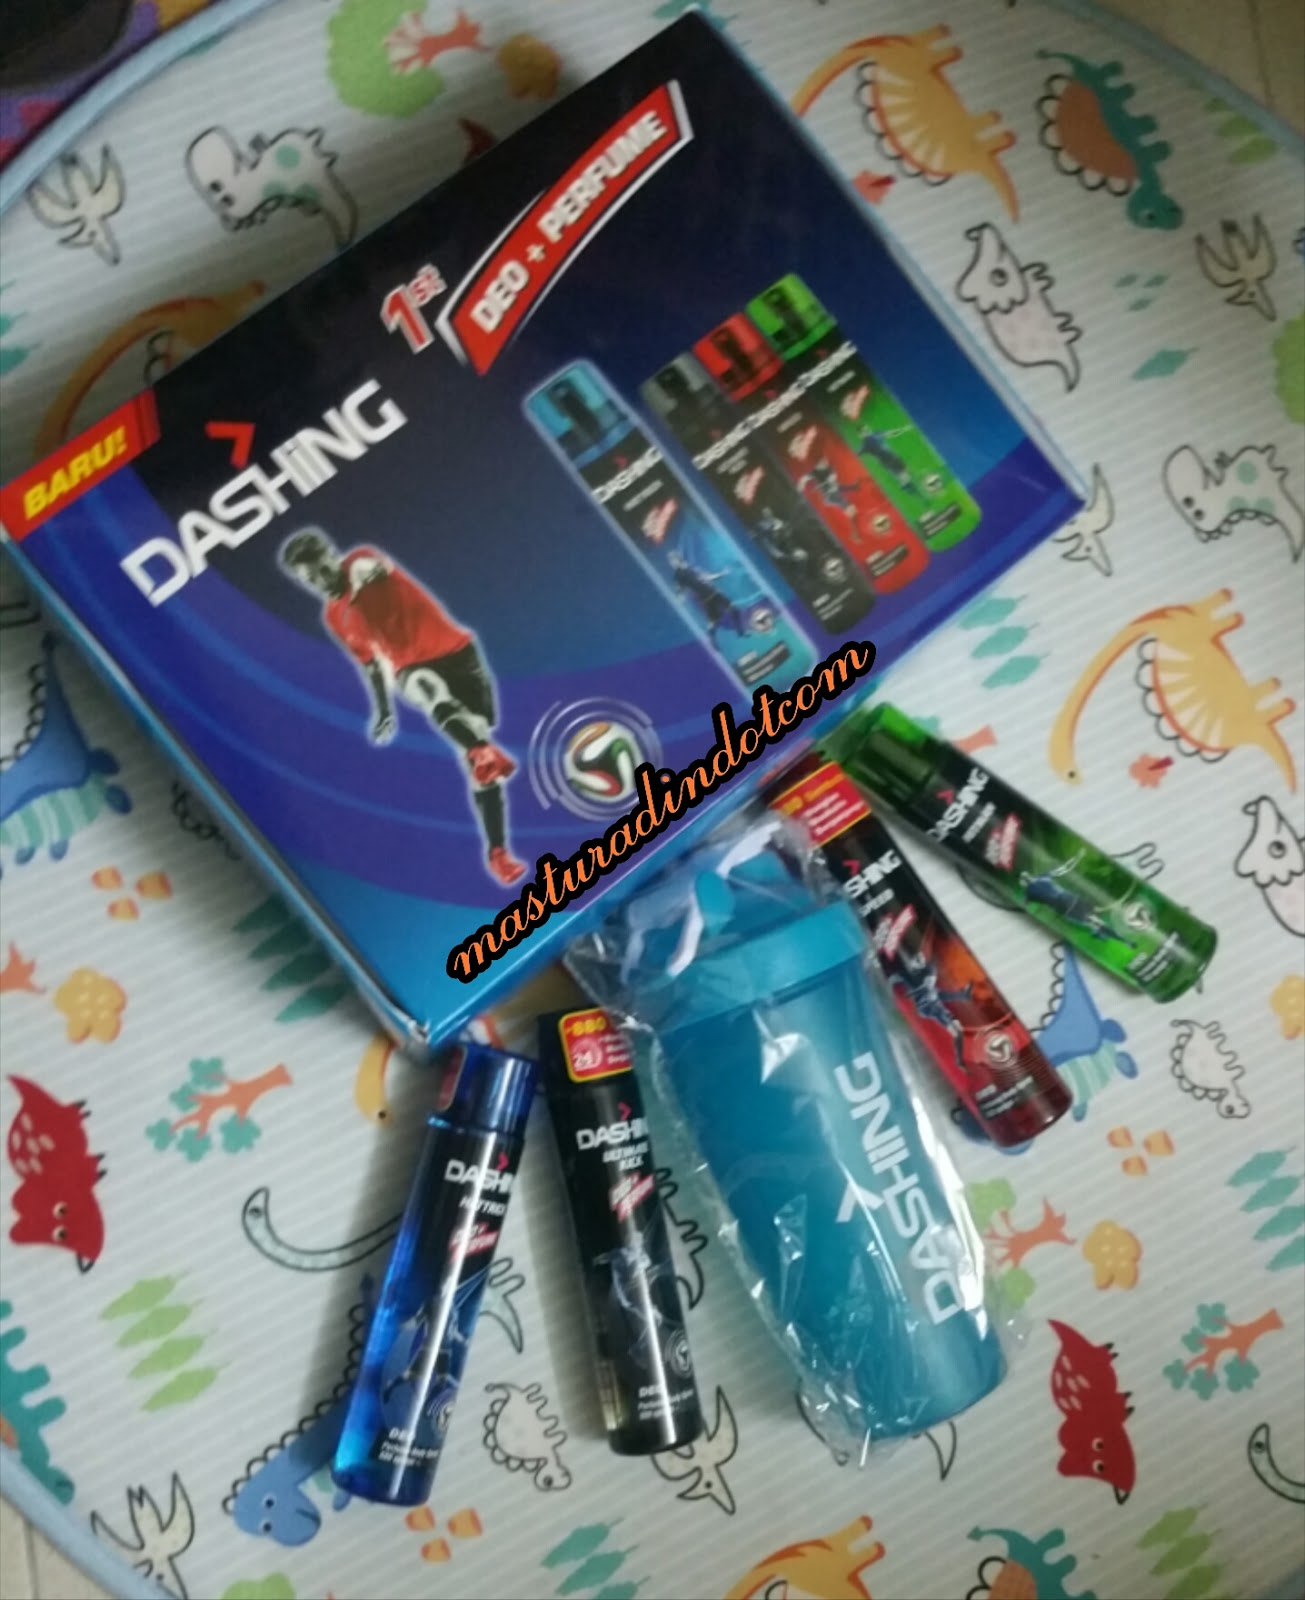 dashing deo + perfume, deodoran wangian, dashing, harga dashing deo + perfume